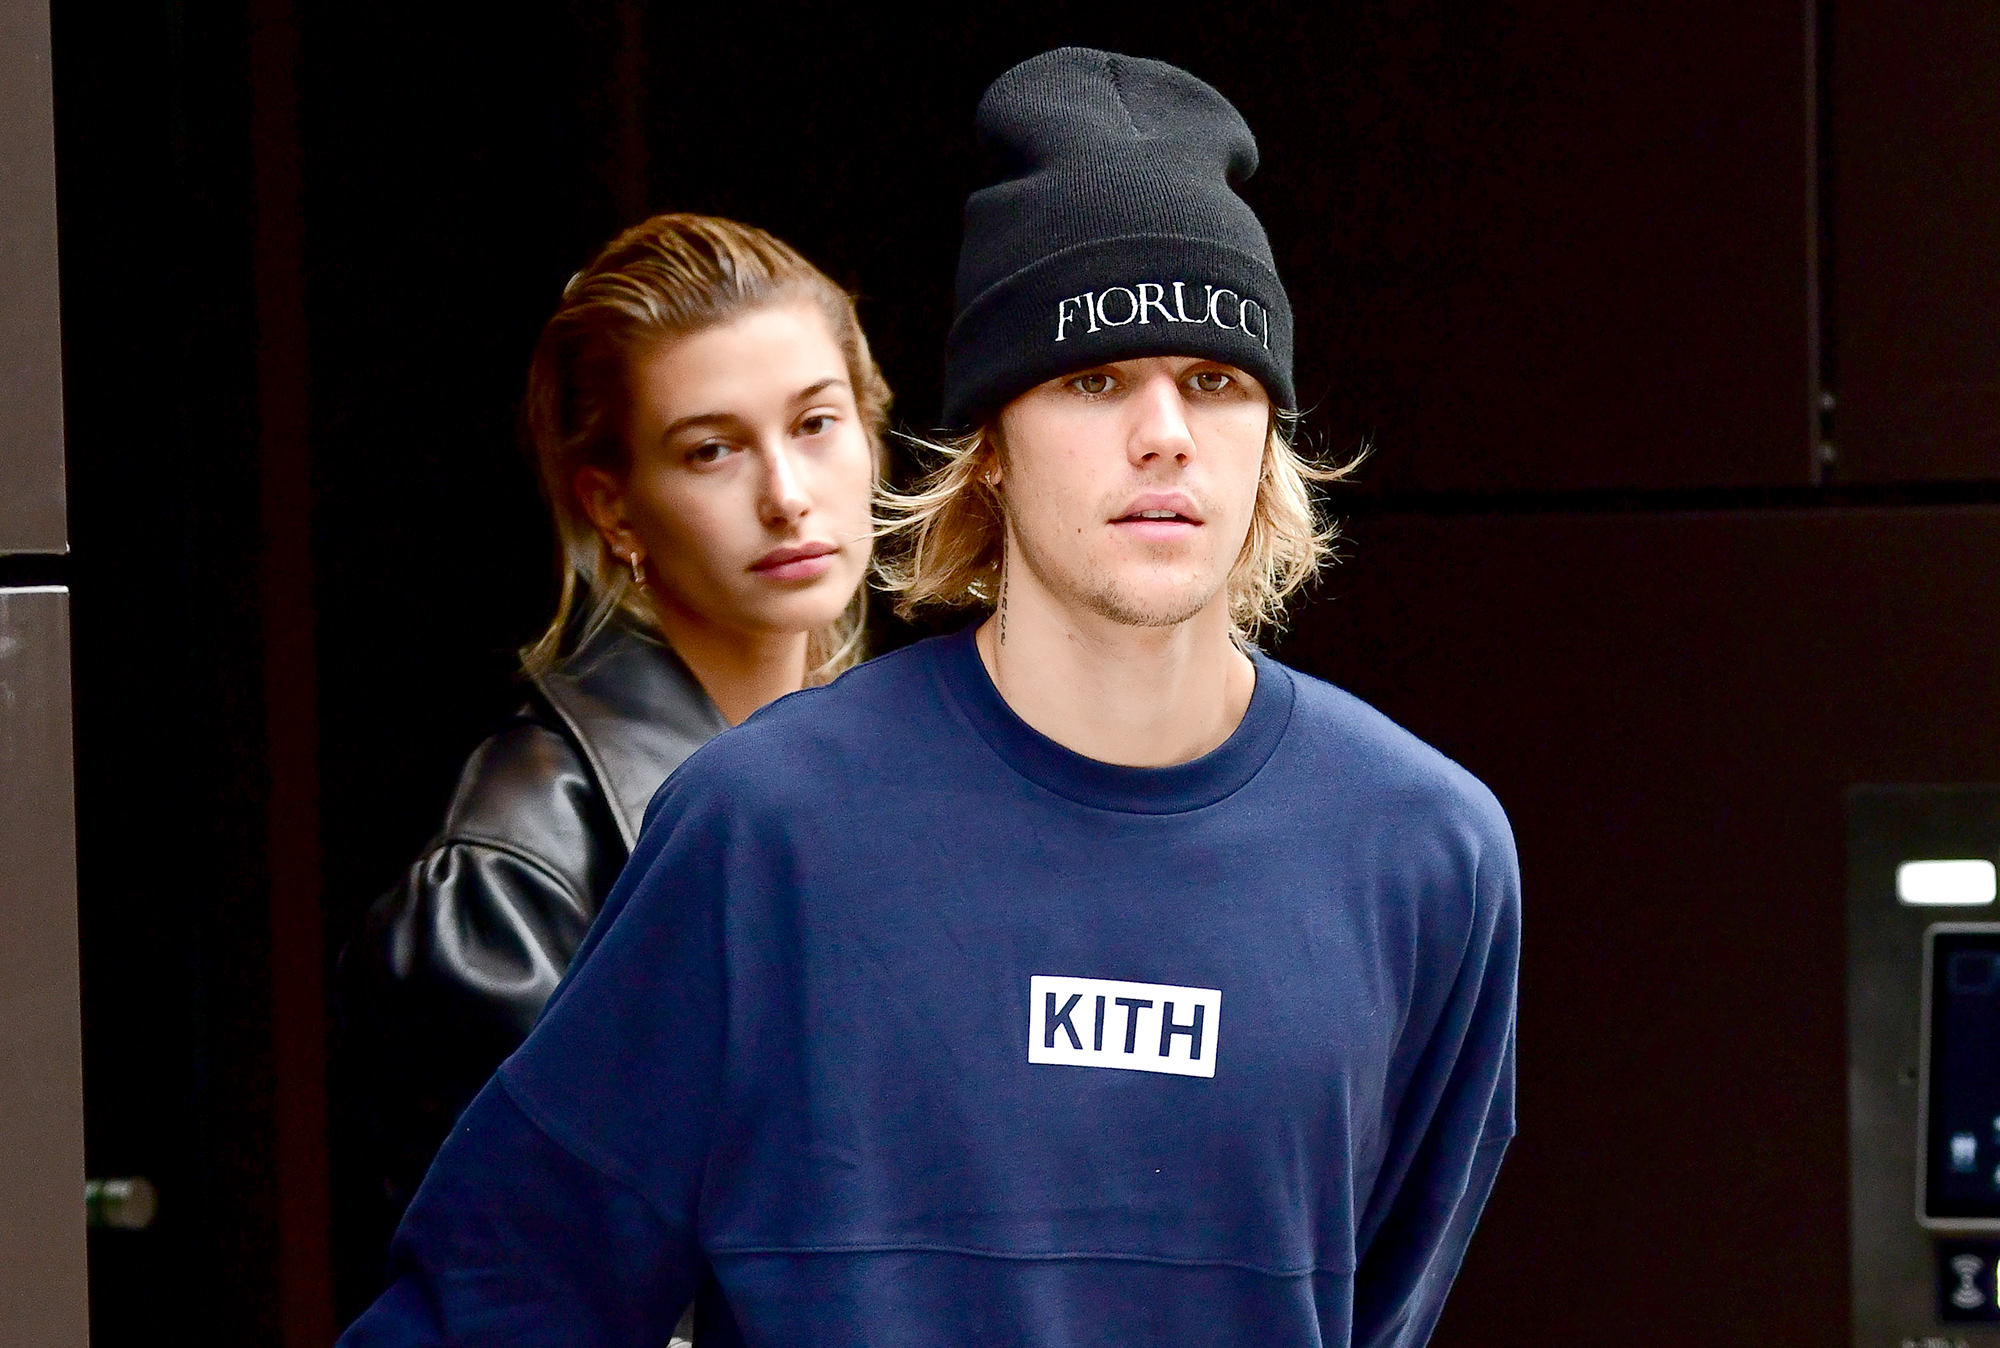 Justin-Bieber-Apologizes-for-Offending-People-With-April-Fools'-Day-Pregnancy-Prank